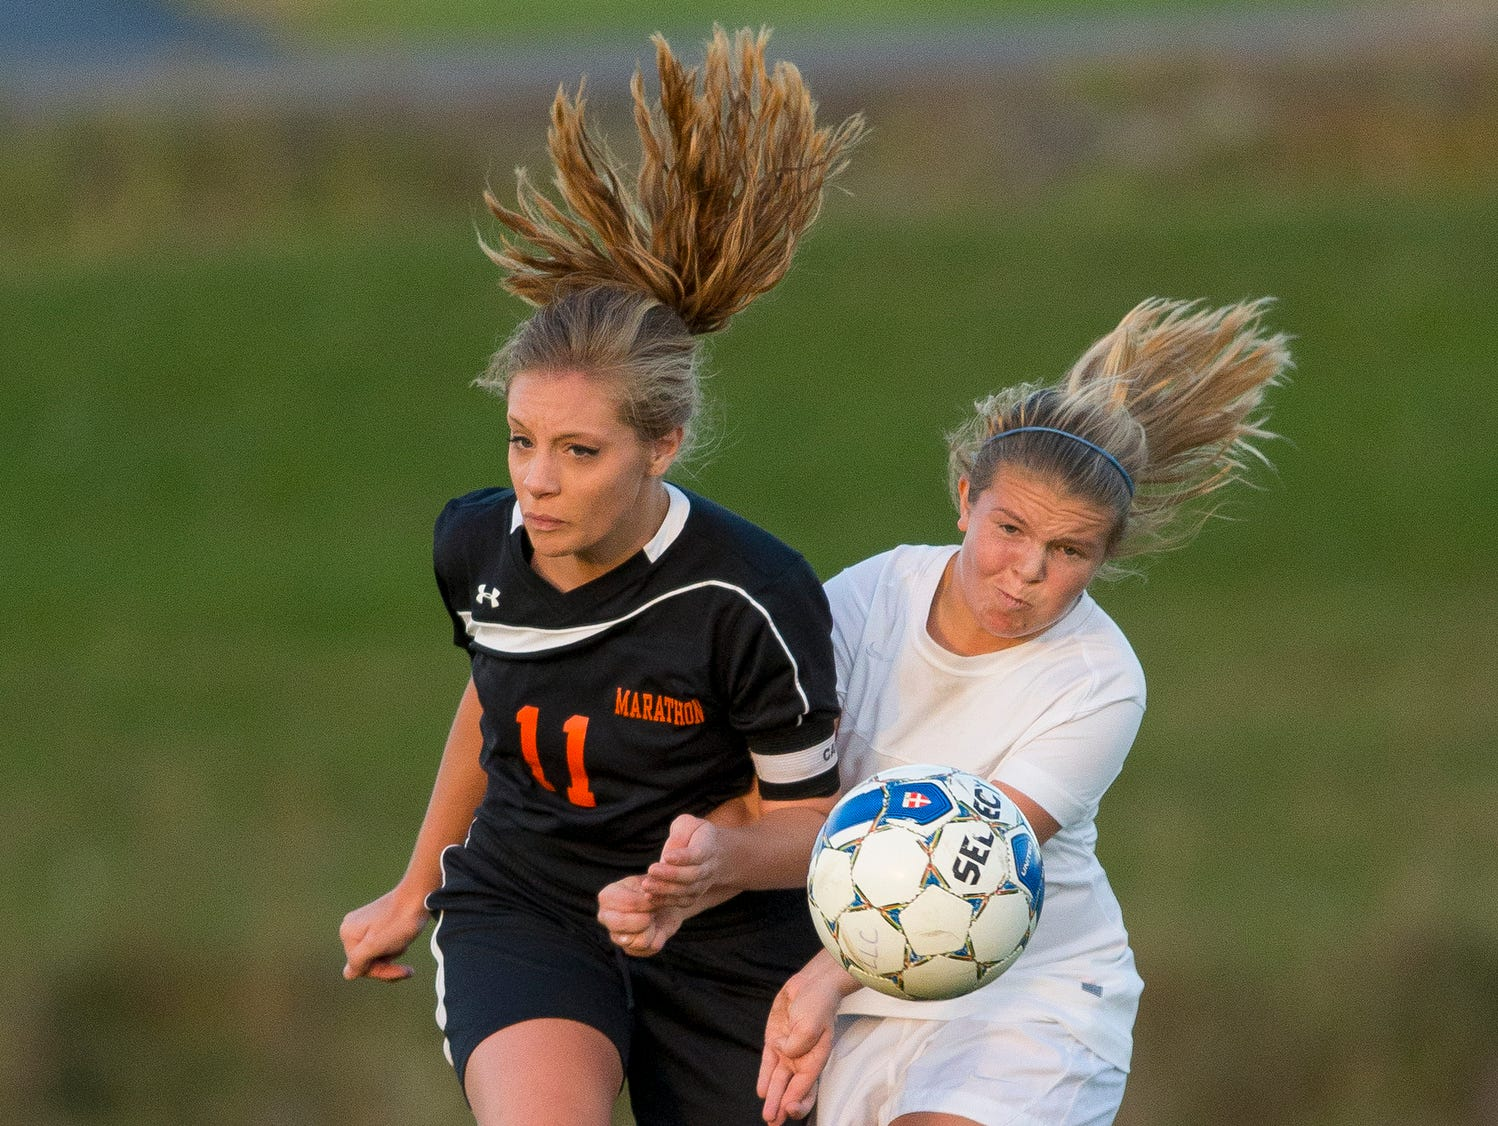 Marathon's Stephanie Wales, left, and Lansing's Reilly Zajac work to control the ball during the first half of their Section 4 Class C semifinal Tuesday evening in Lansing. The host Bobcats won, 5-1, and will play Elmira Notre Dame on Friday in Norwich for the sectional championship.